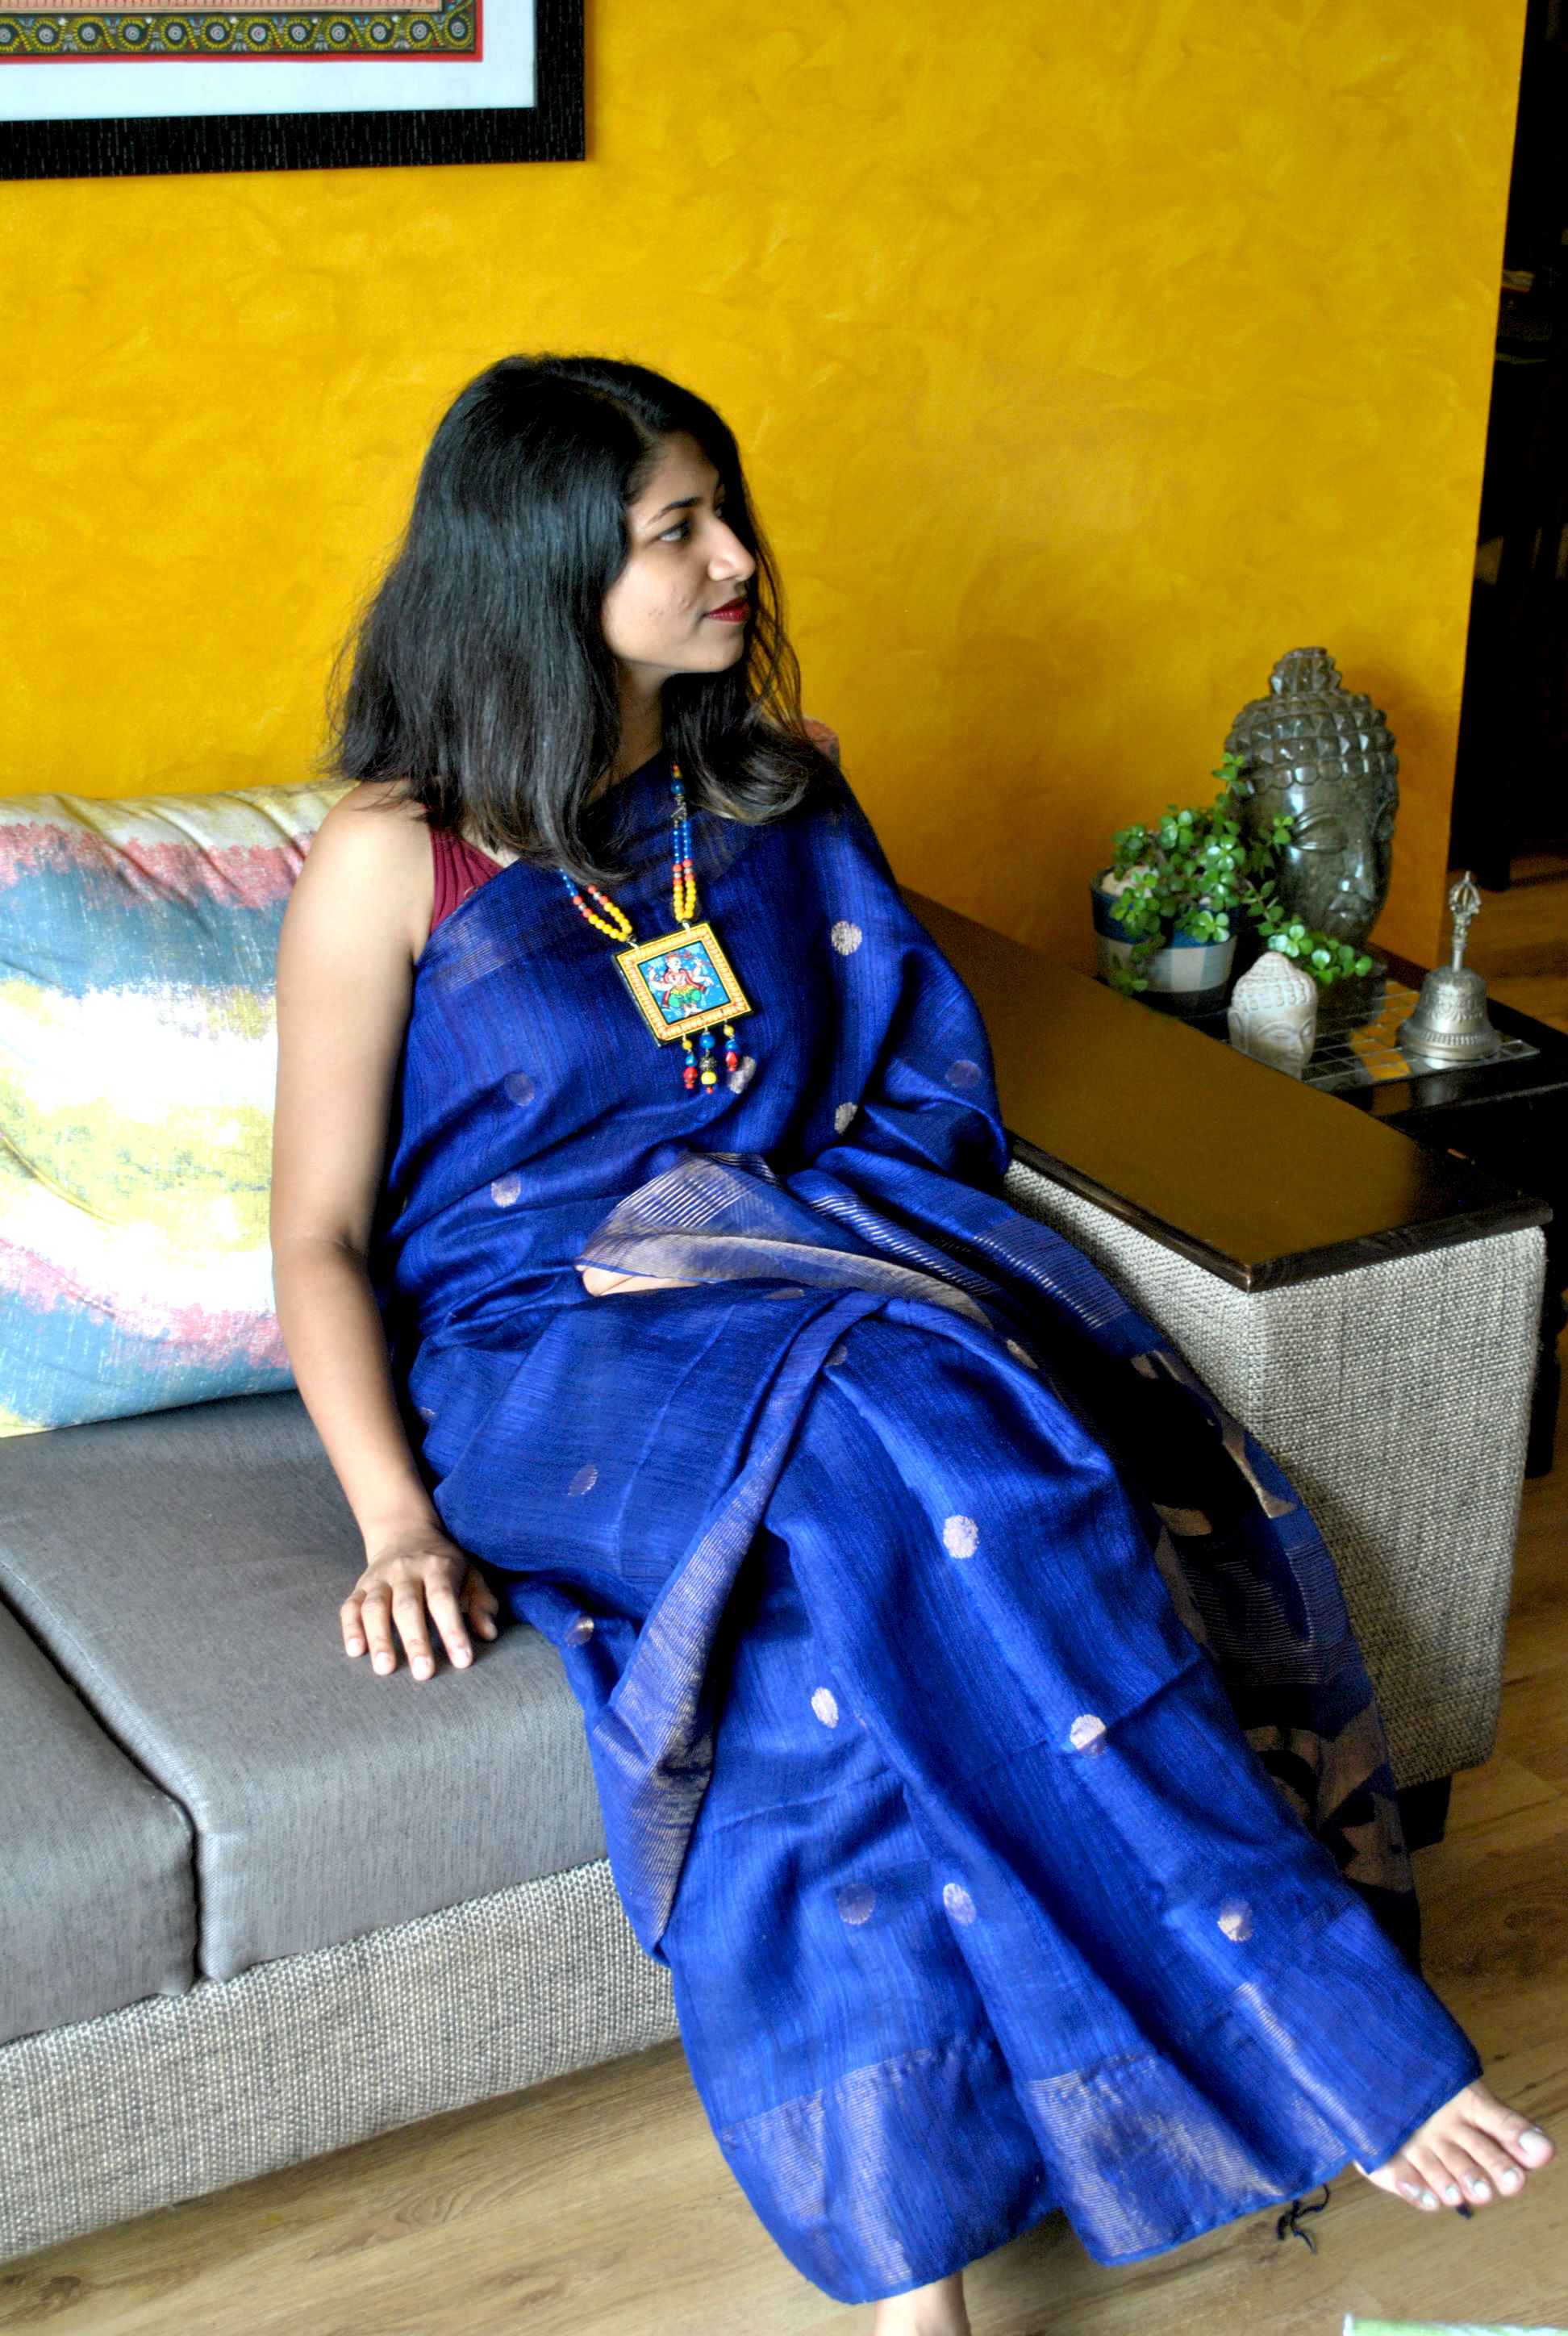 5-Amazing-ways-to-style-your-Pattachitra-Necklace5 5 Amazing ways to style your Pattachitra Necklace  - Tradition meets Trend